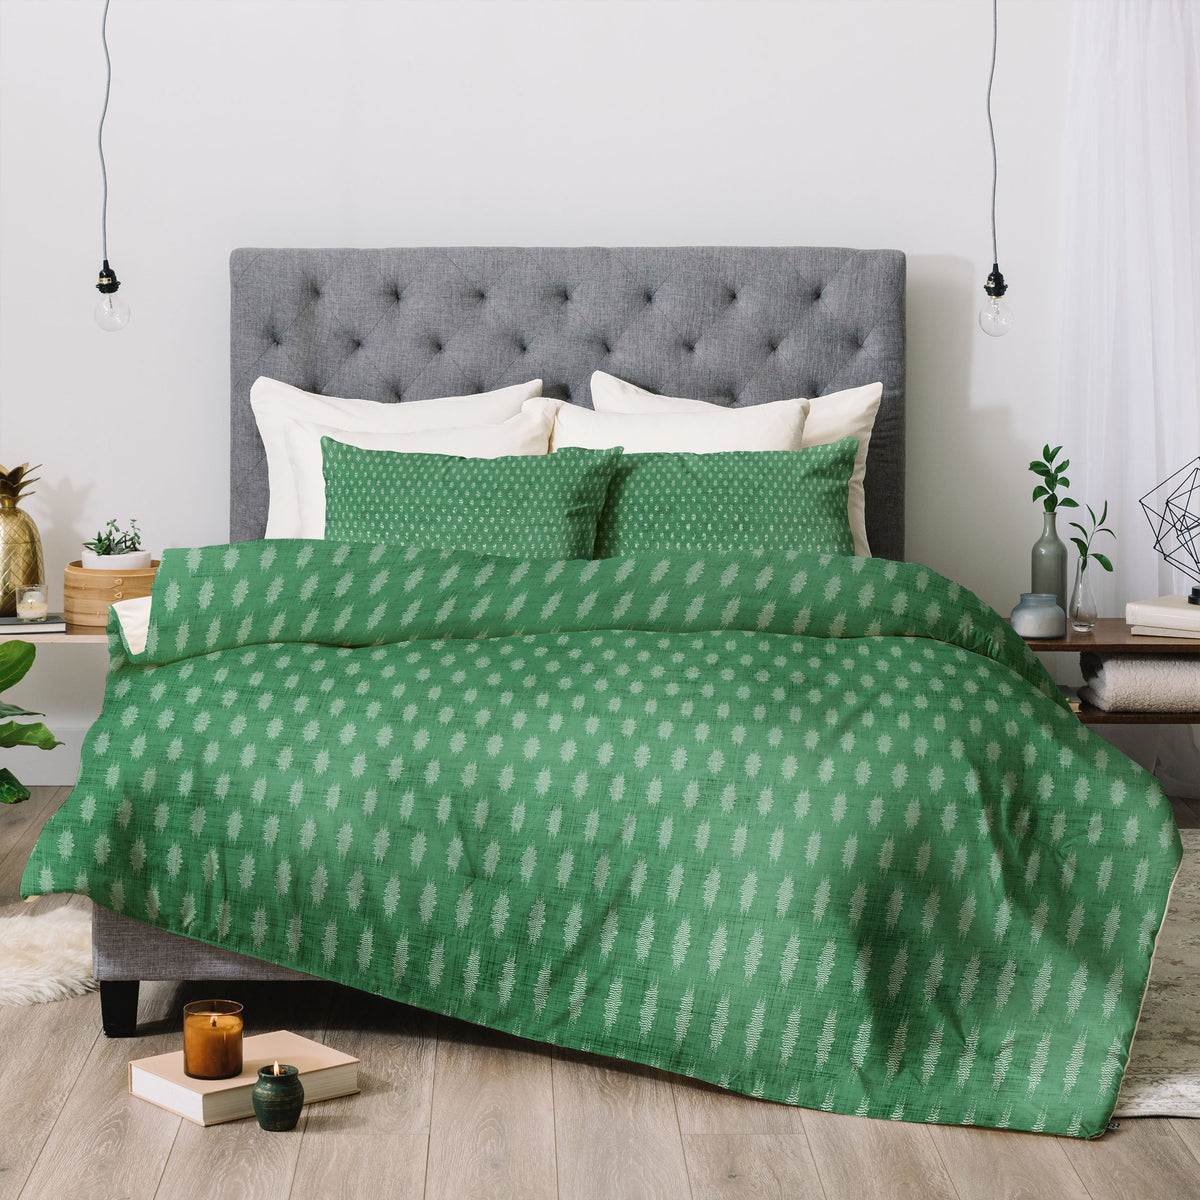 Umbra Ikat Bedding